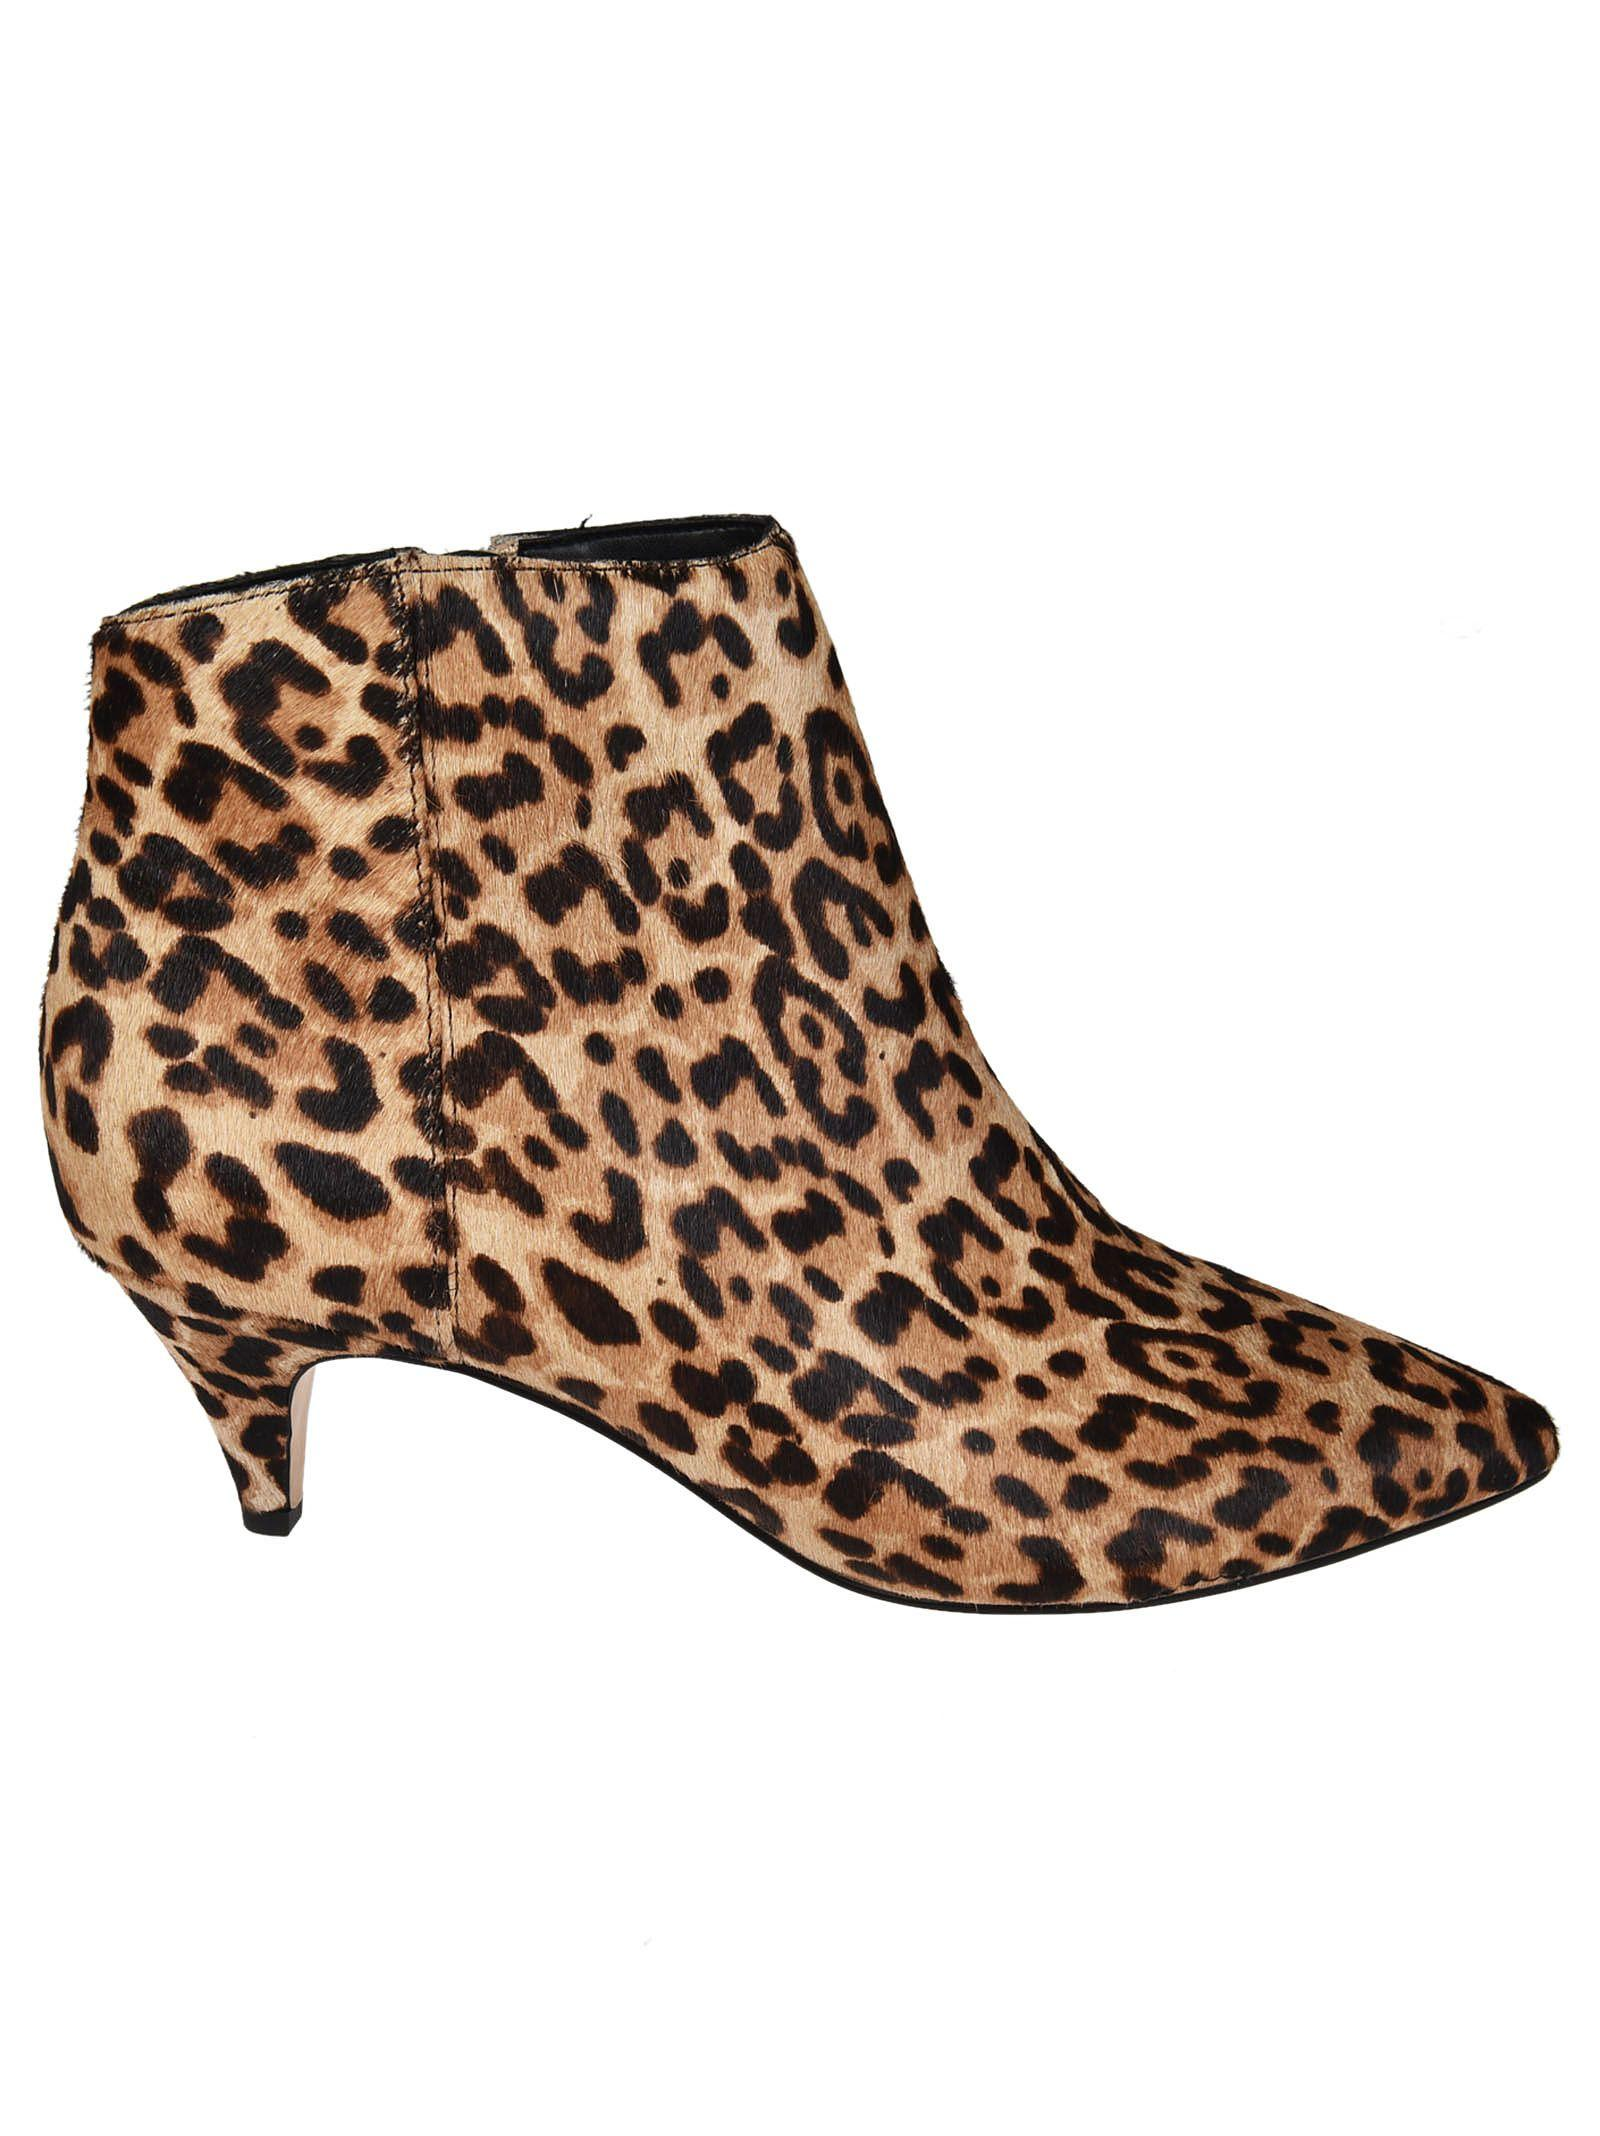 6bb6389d4897 Sam Edelman Women s Kinzey Leopard Print Calf Hair Kitten-Heel Booties